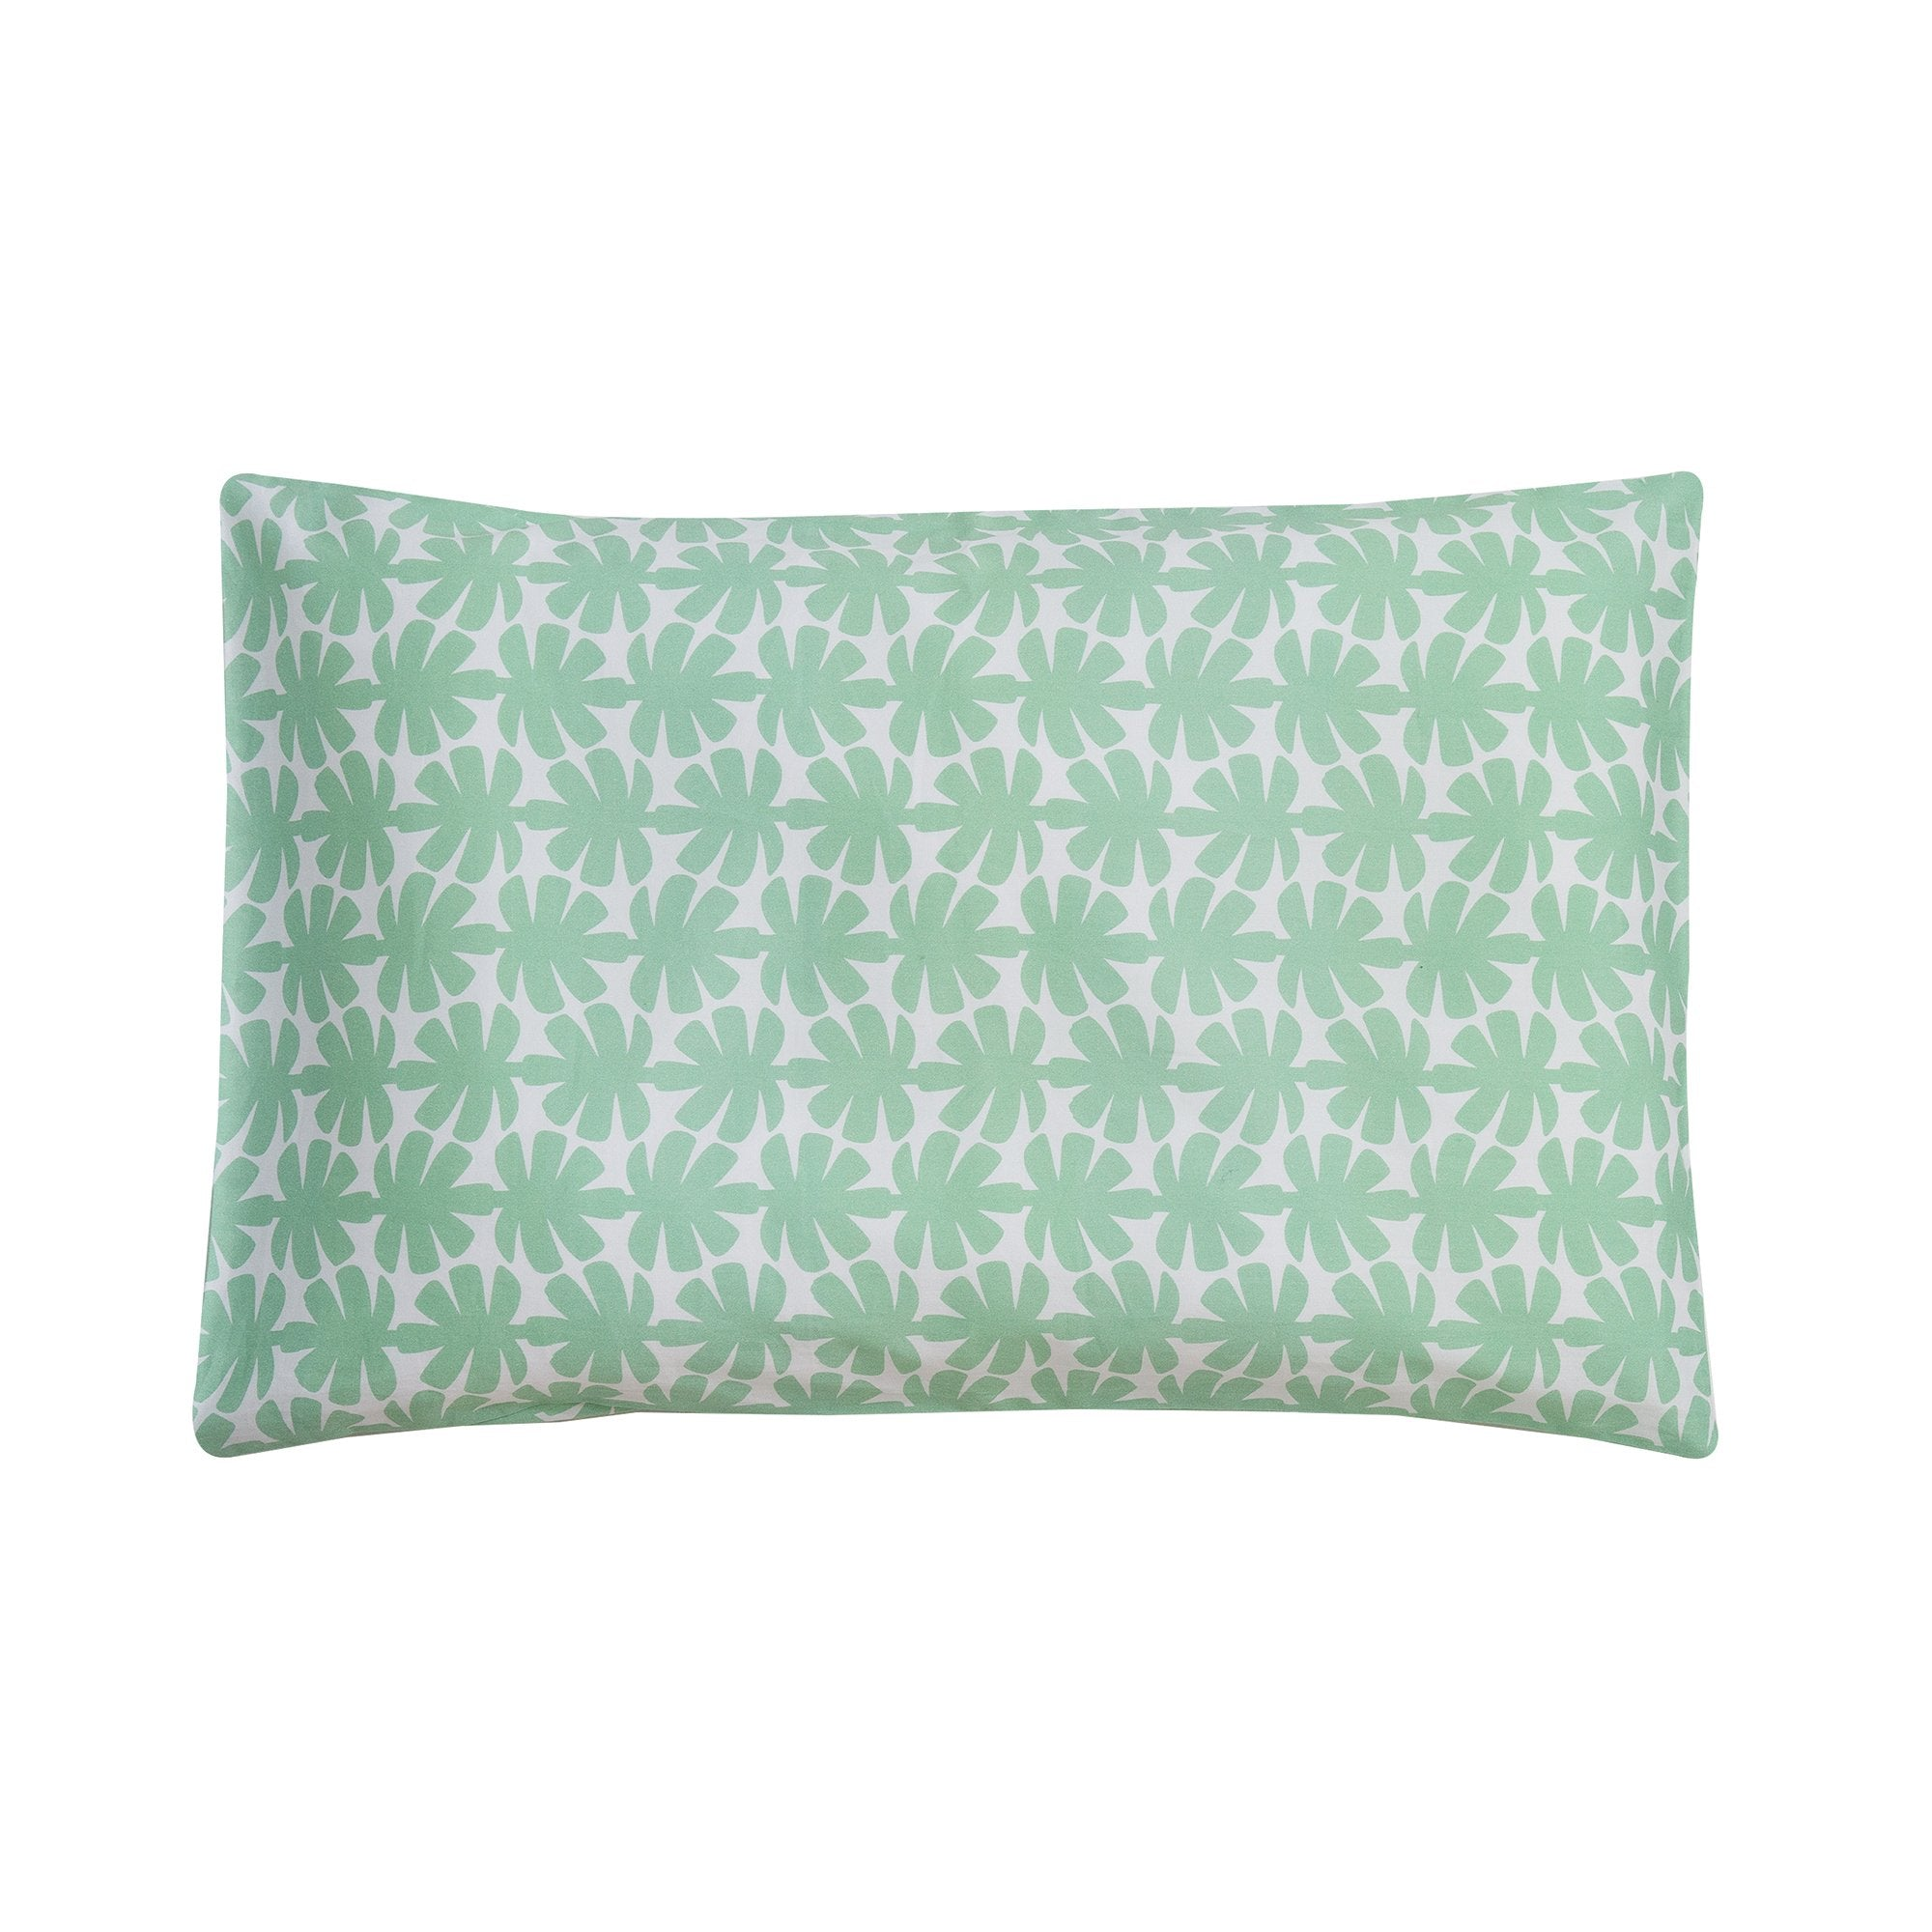 Kikau's Palm Green Coco Palm kids pillowcase on white background